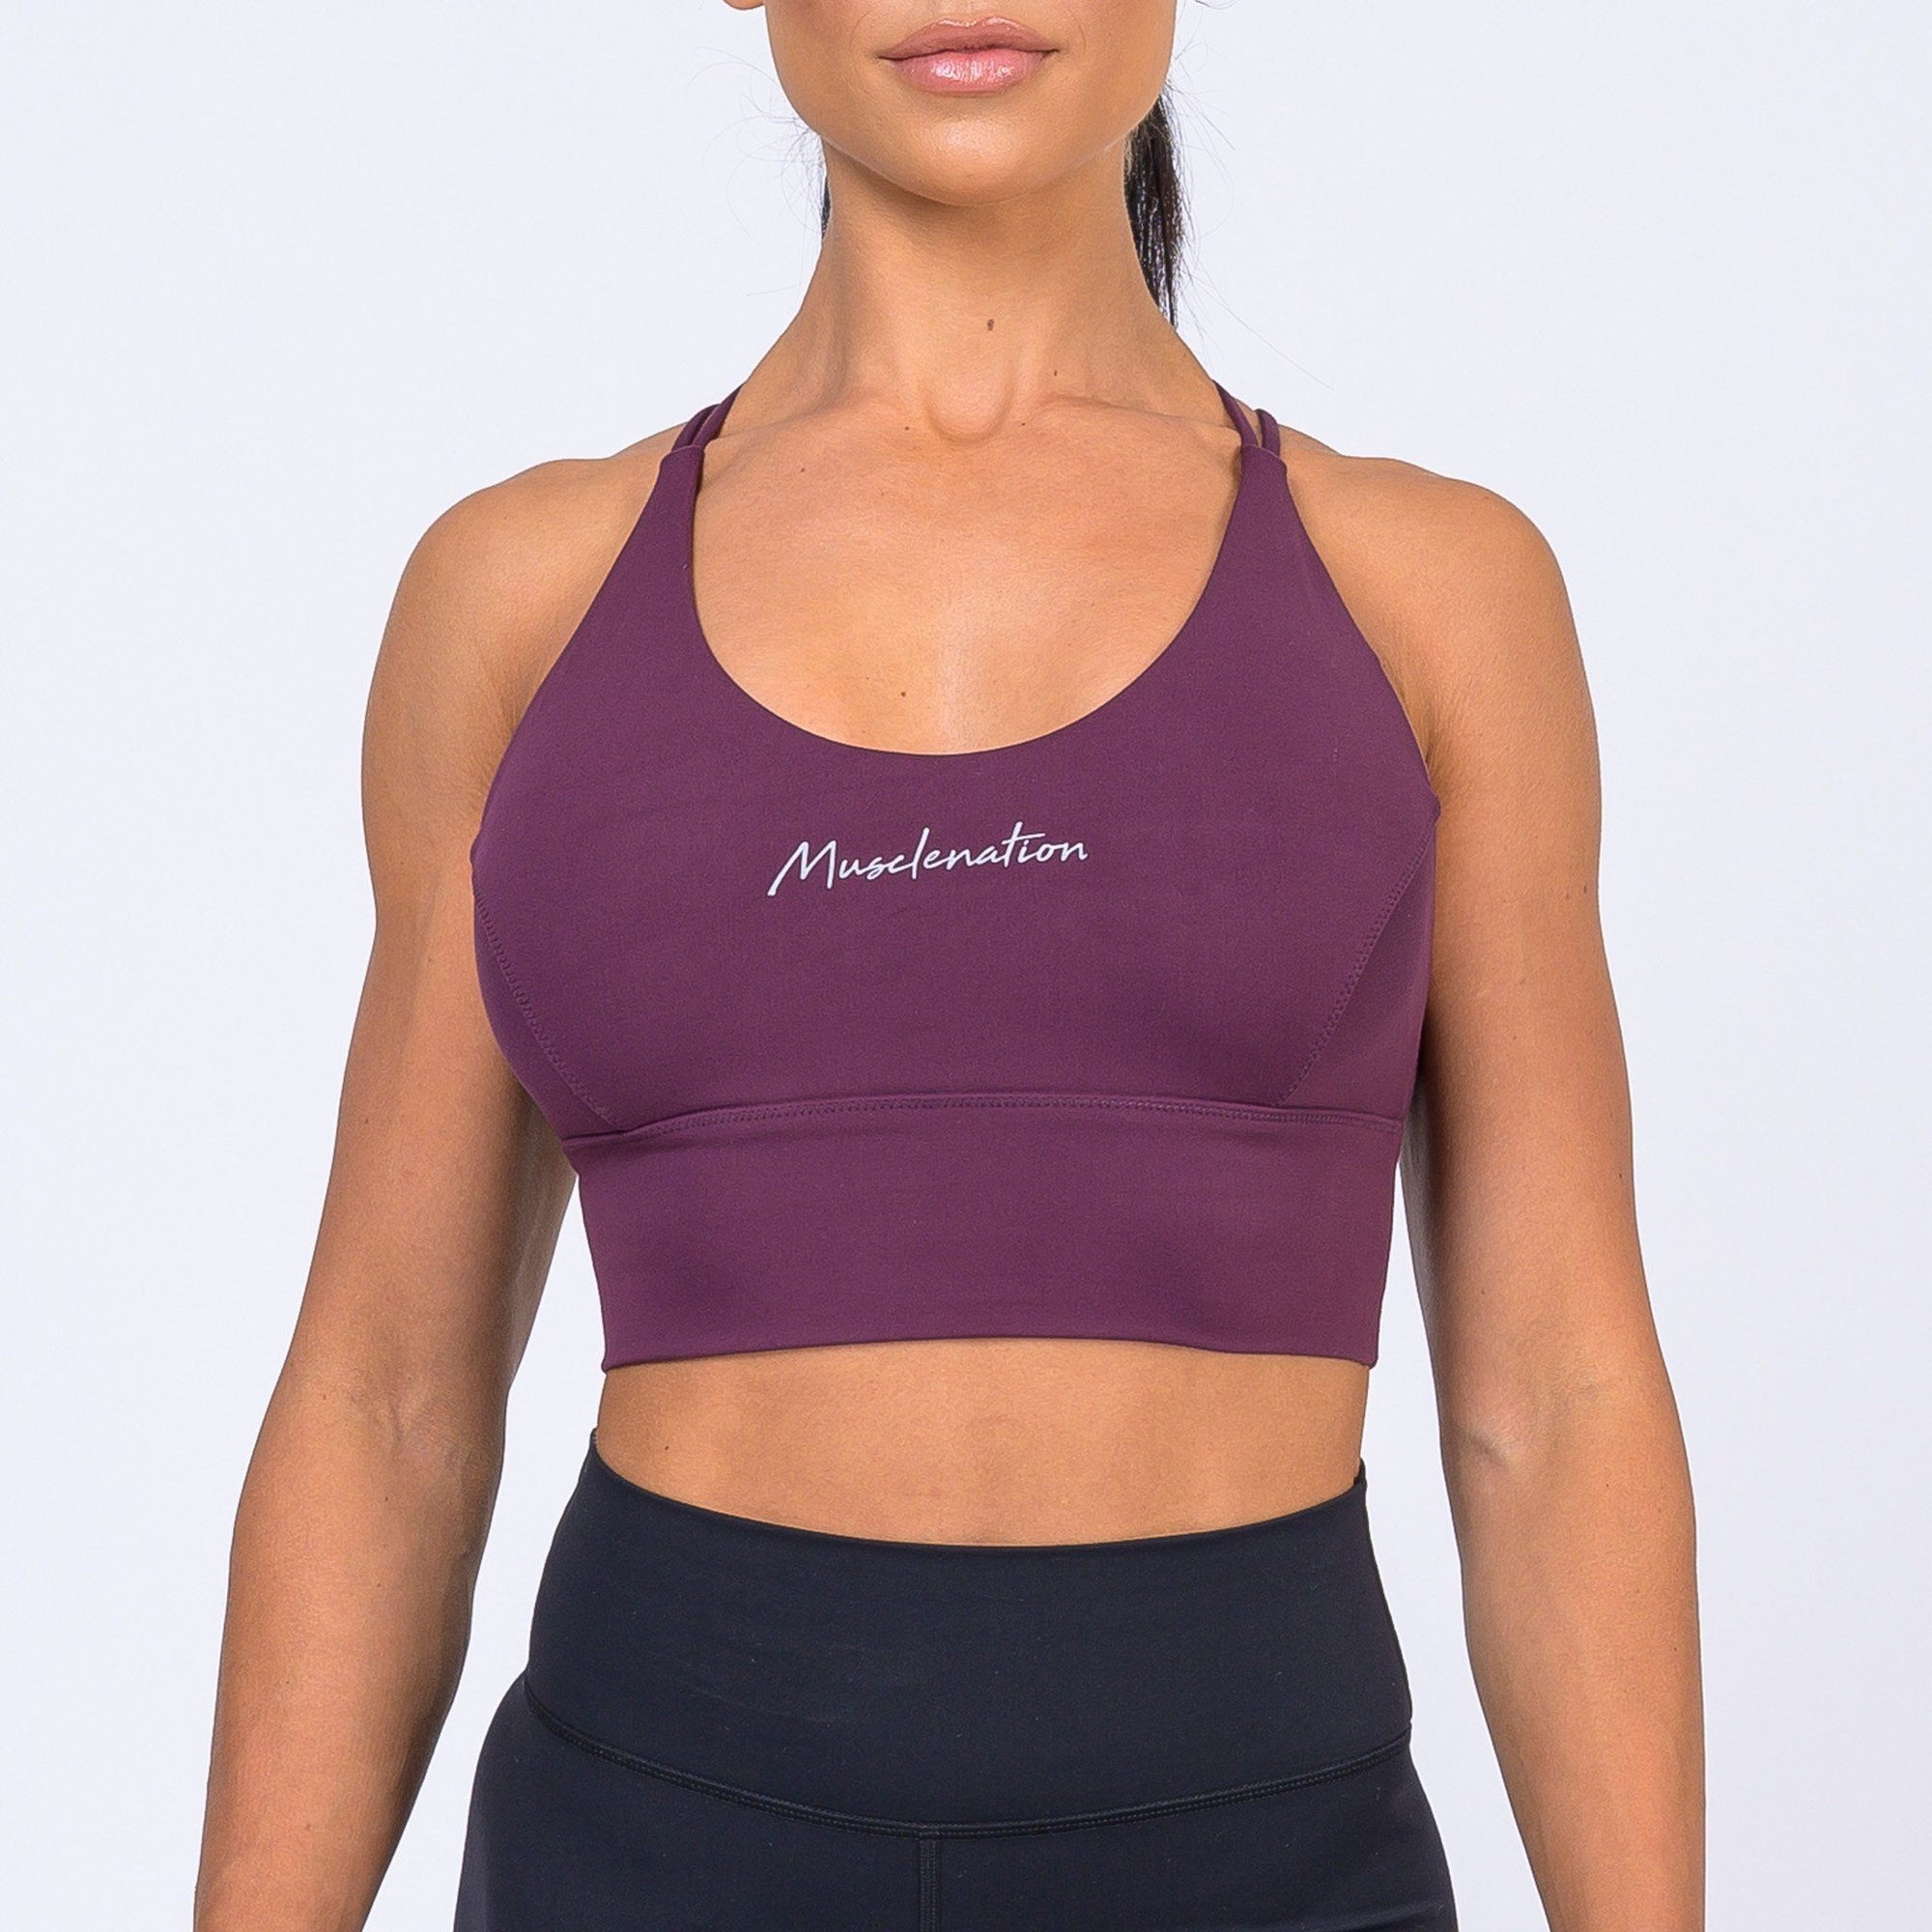 Muscle Nation Butter Motion Sports Bra – Mauve